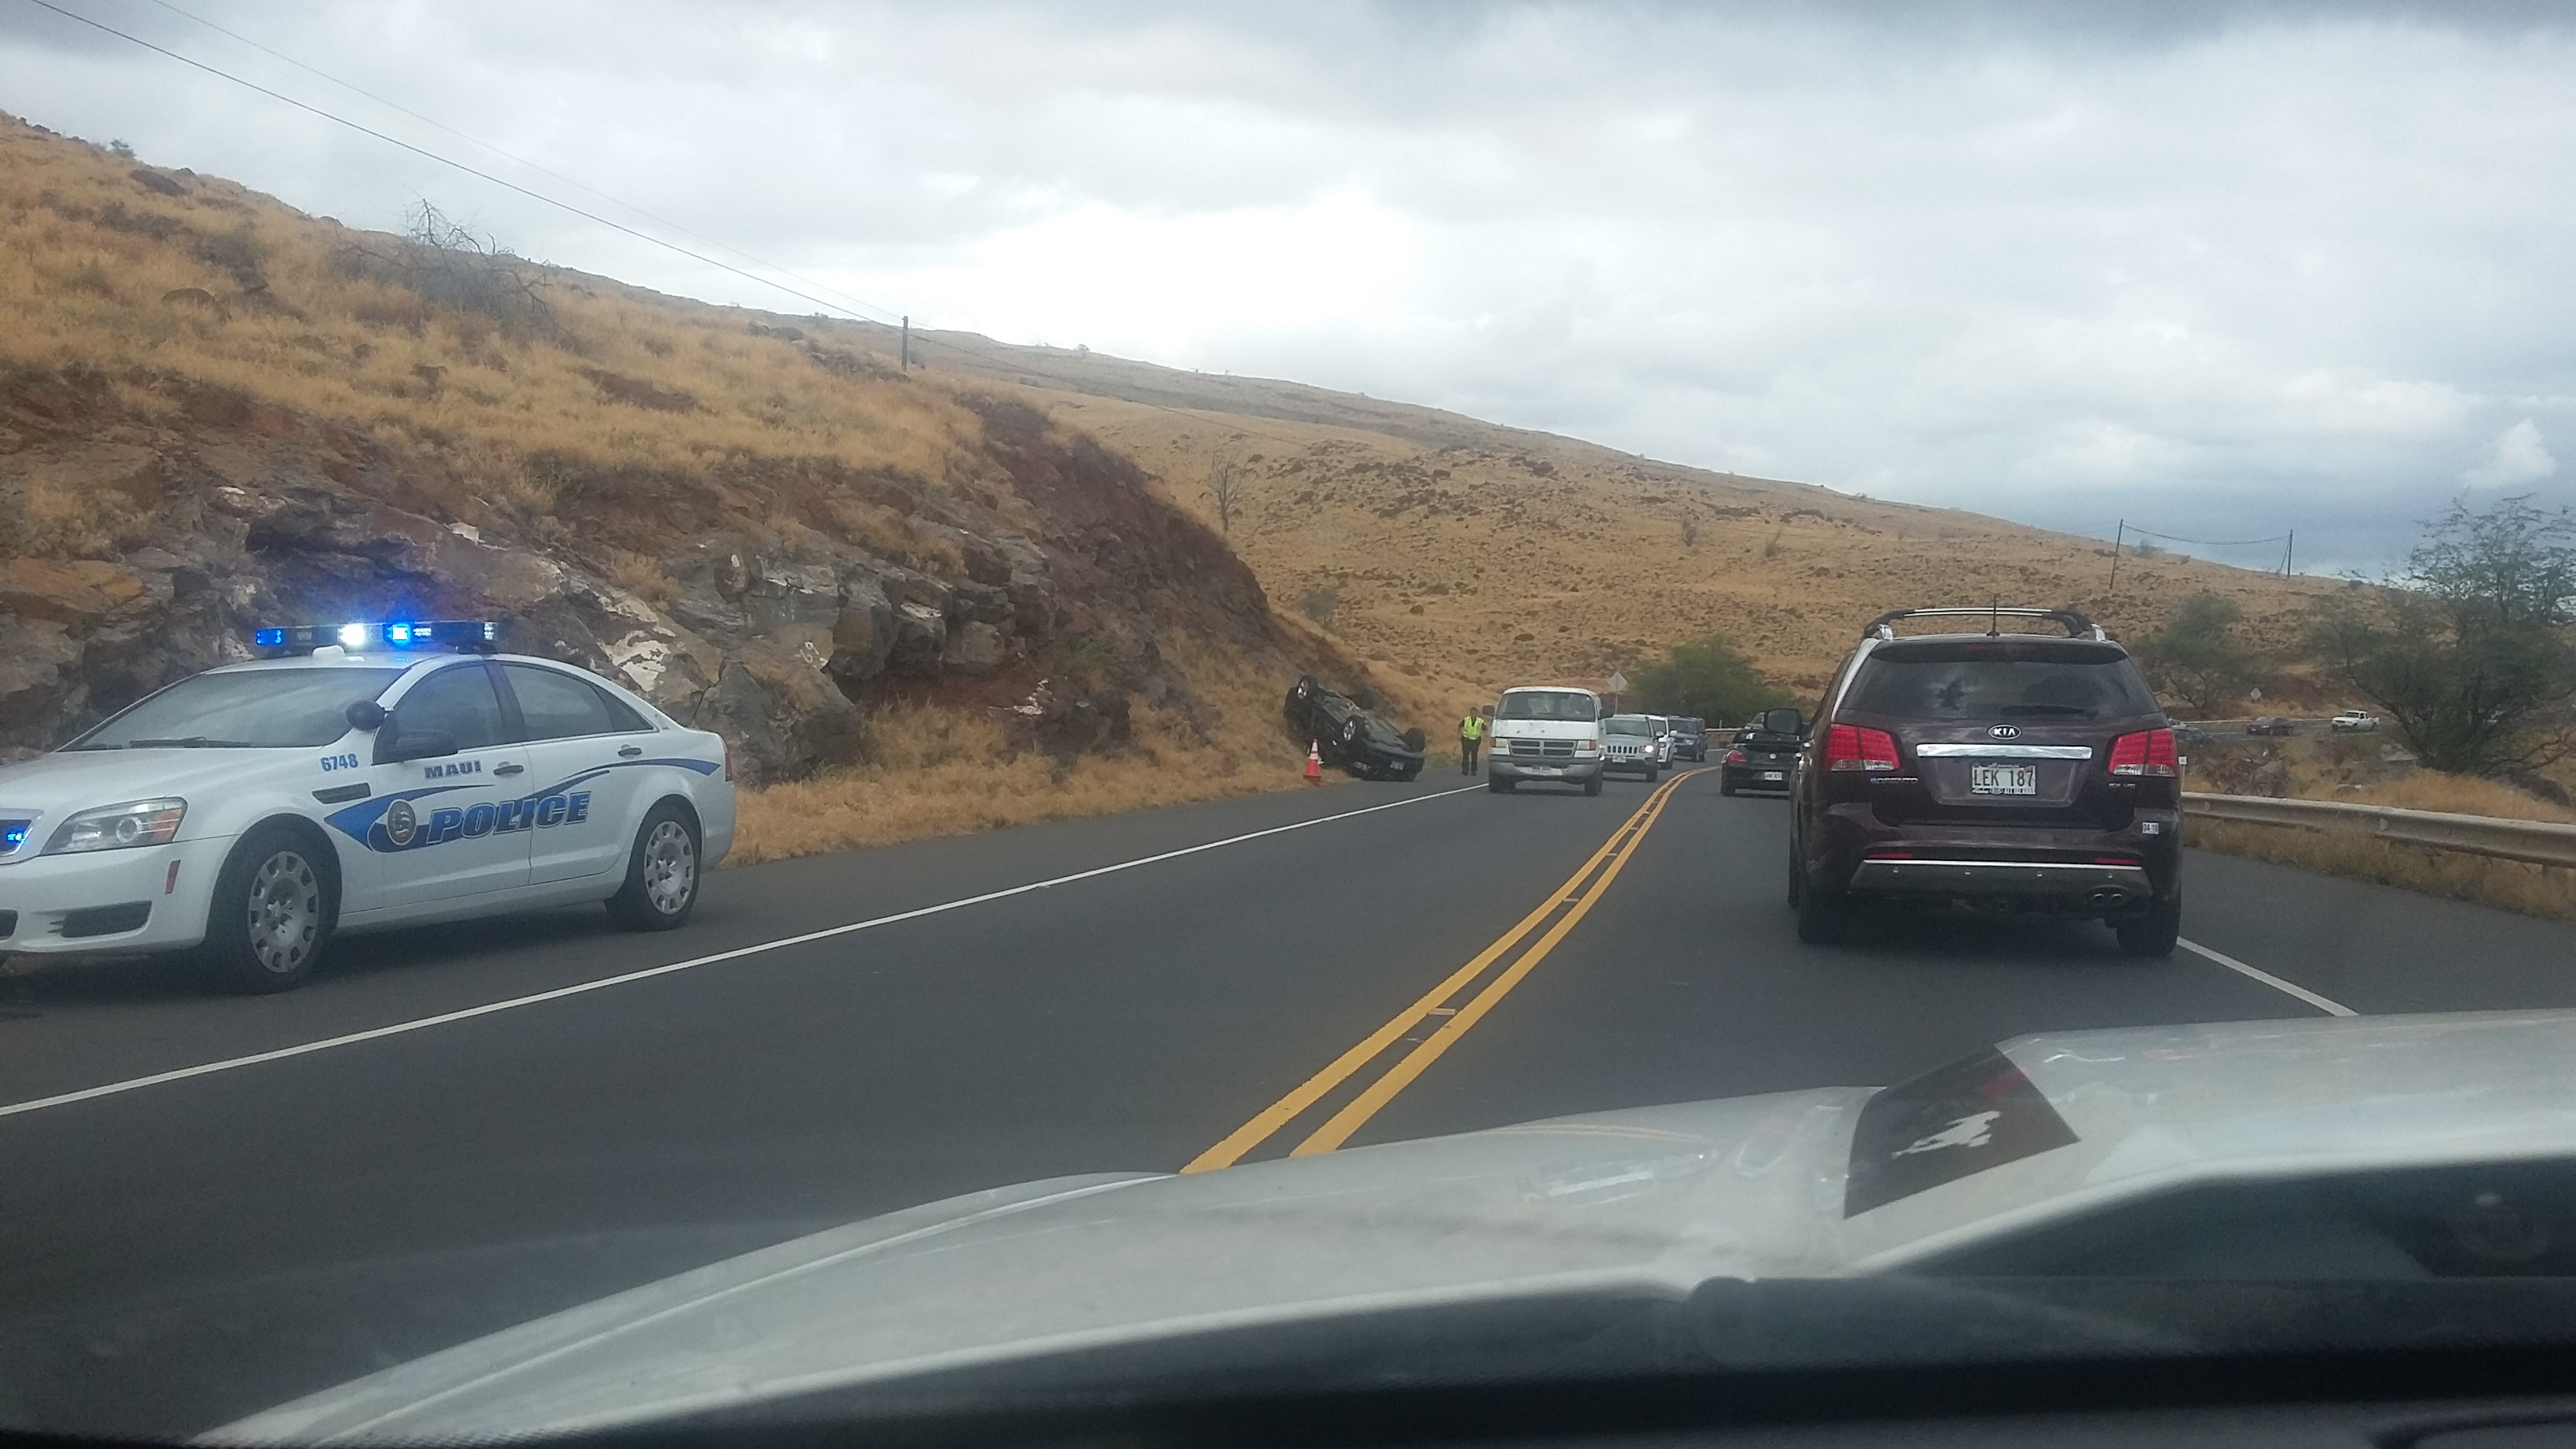 Maui Now : Traffic Alert: Car Accident Reported Near Scenic Lookout